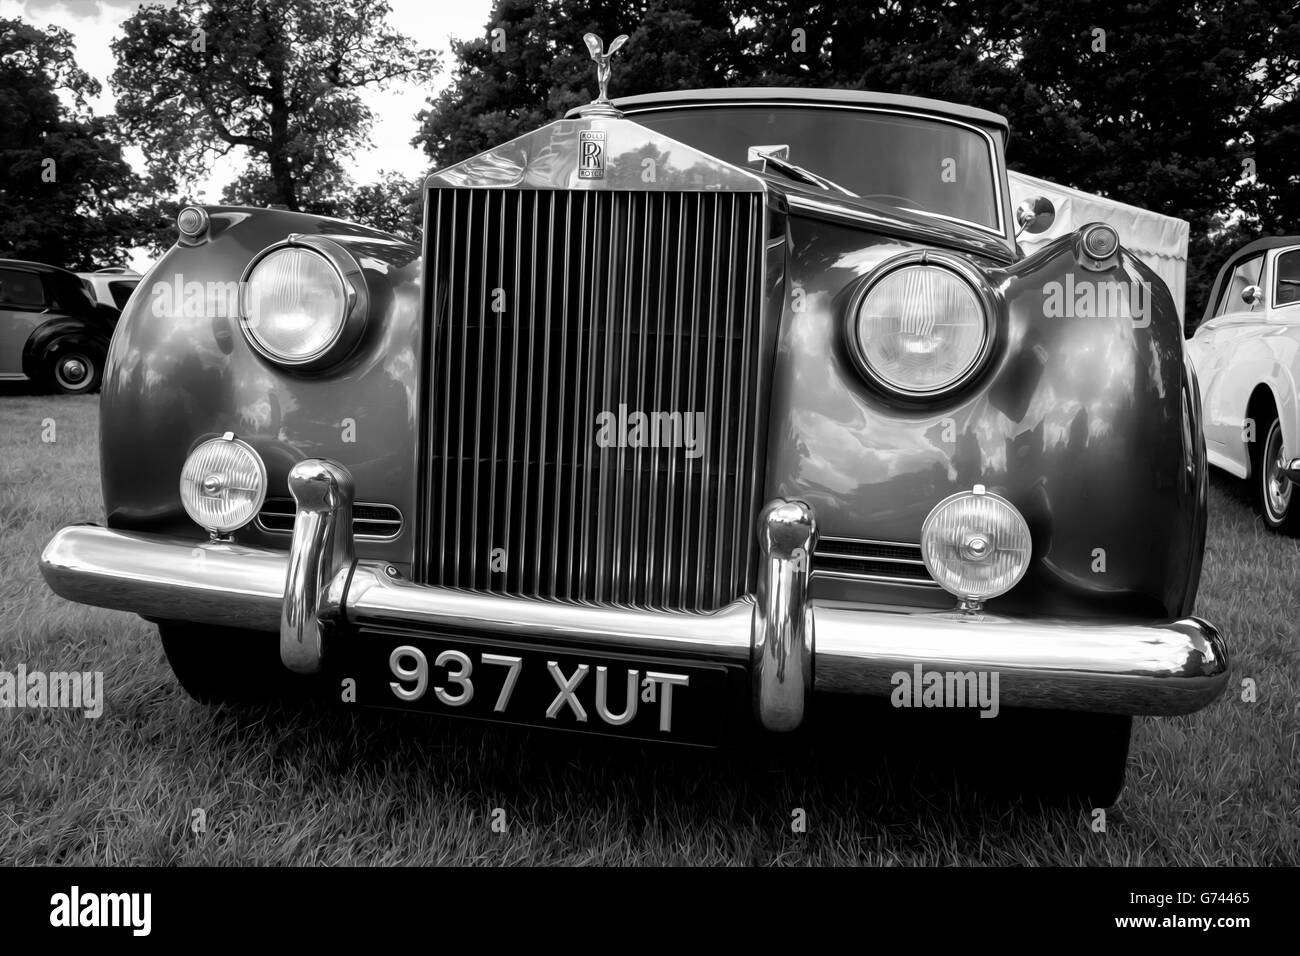 Classic Rolls Royce In Black White With A Subtle Oil Painting Stock Photo Alamy